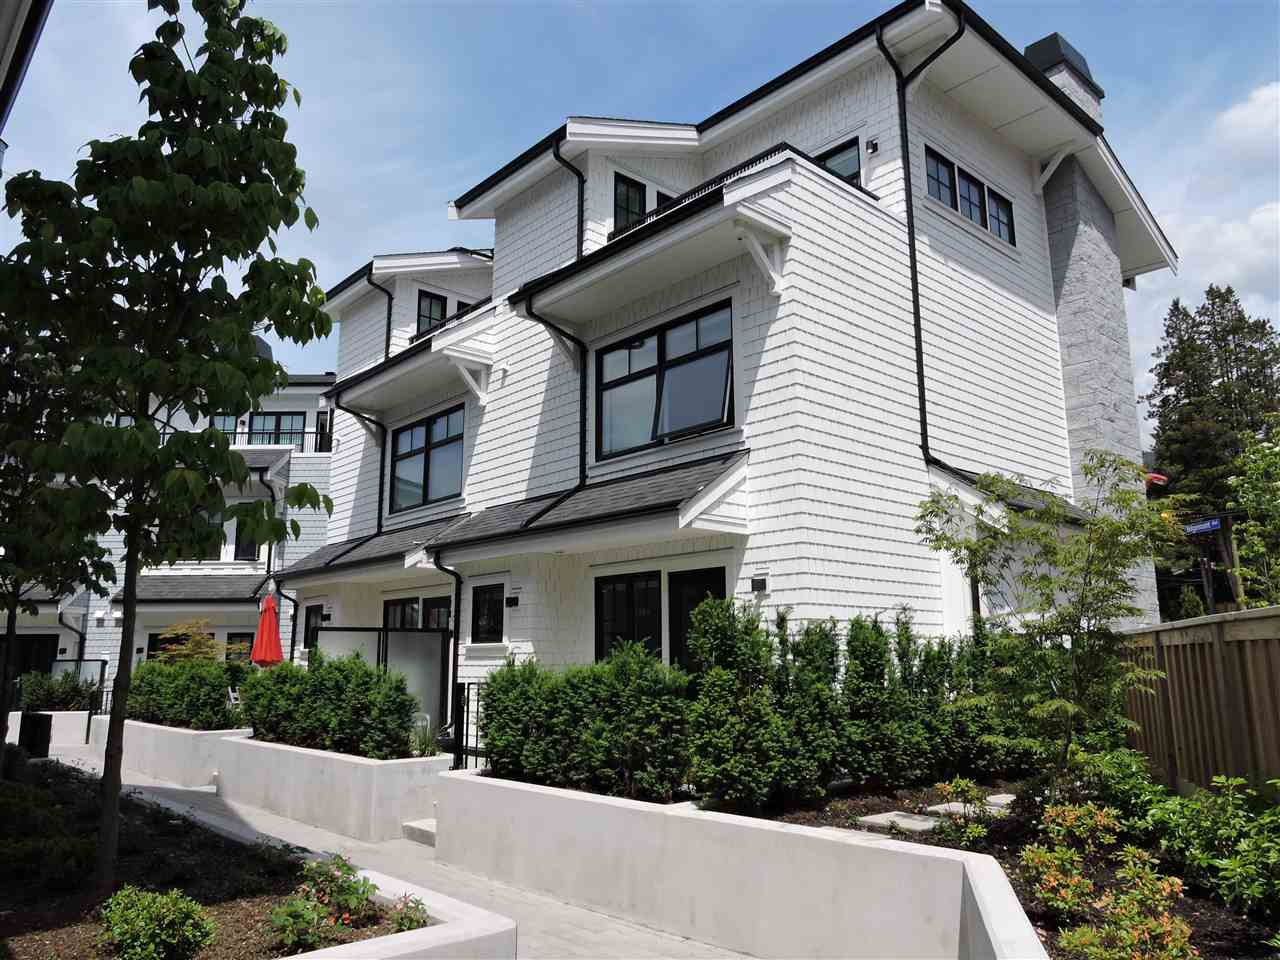 Main Photo: 14 1133 Ridgewood Drive in North Vancouver: Edgemont Townhouse for sale : MLS®# R2372640